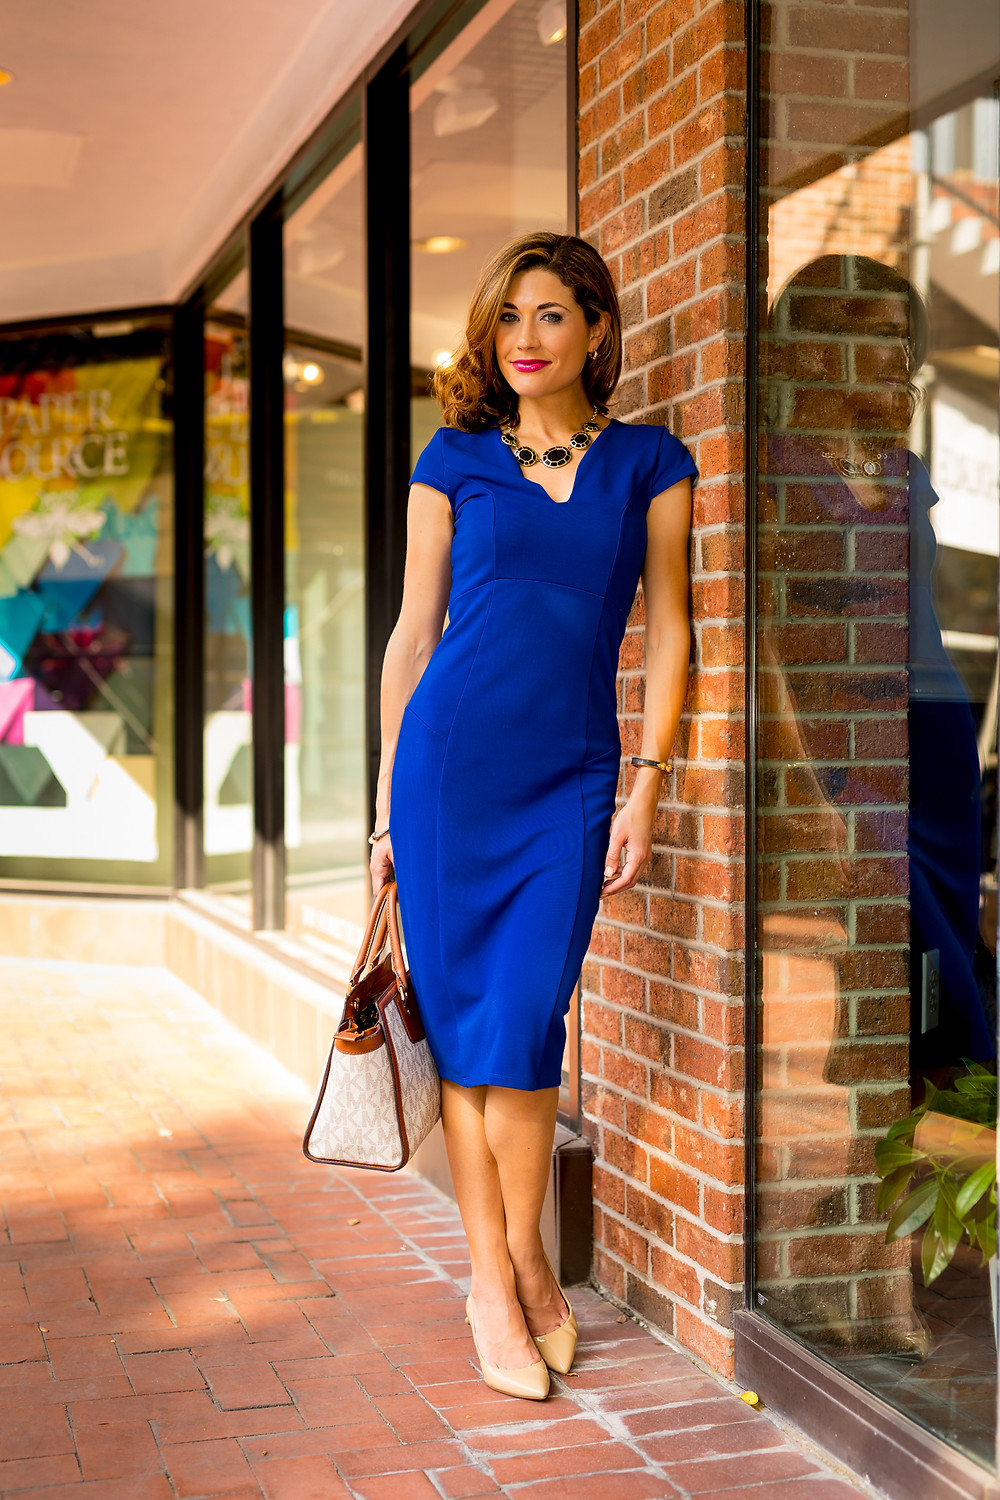 Livs Lookbook, Liv's Lookbook, interview outfit, interview dress, work outfit, work fashion, interview fashion